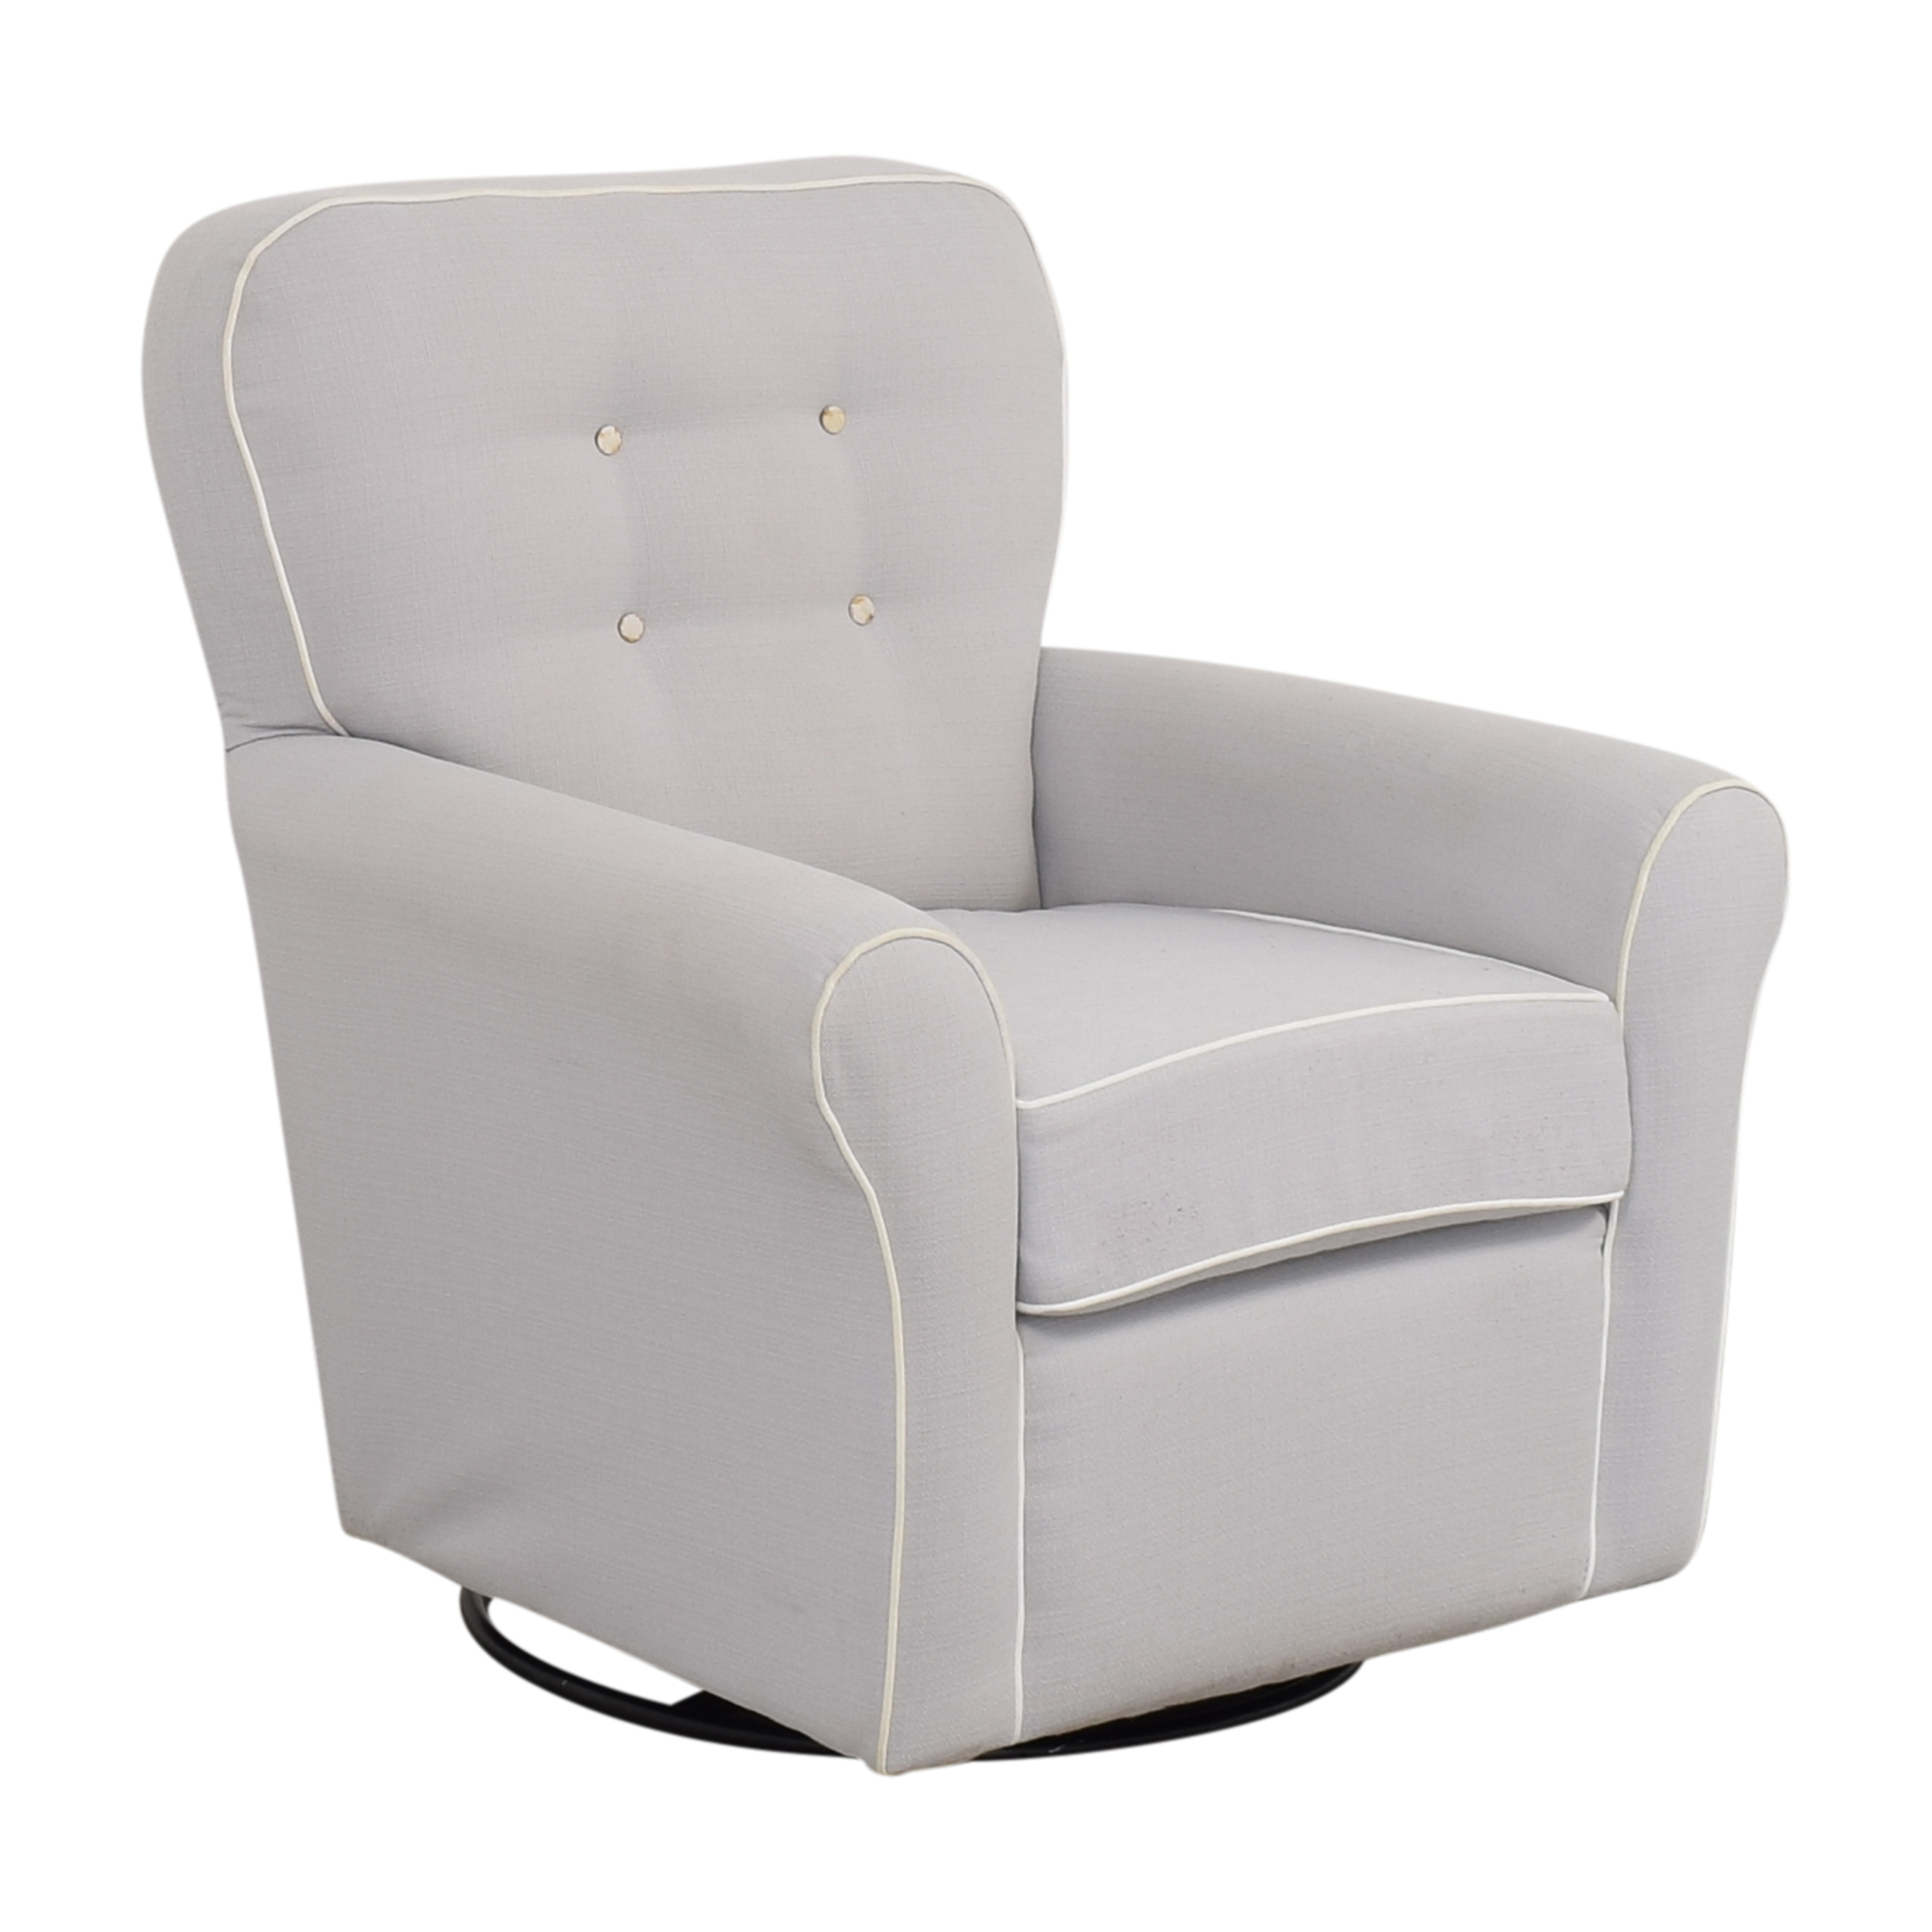 Tufted Glider Swivel Rocker Chair ma